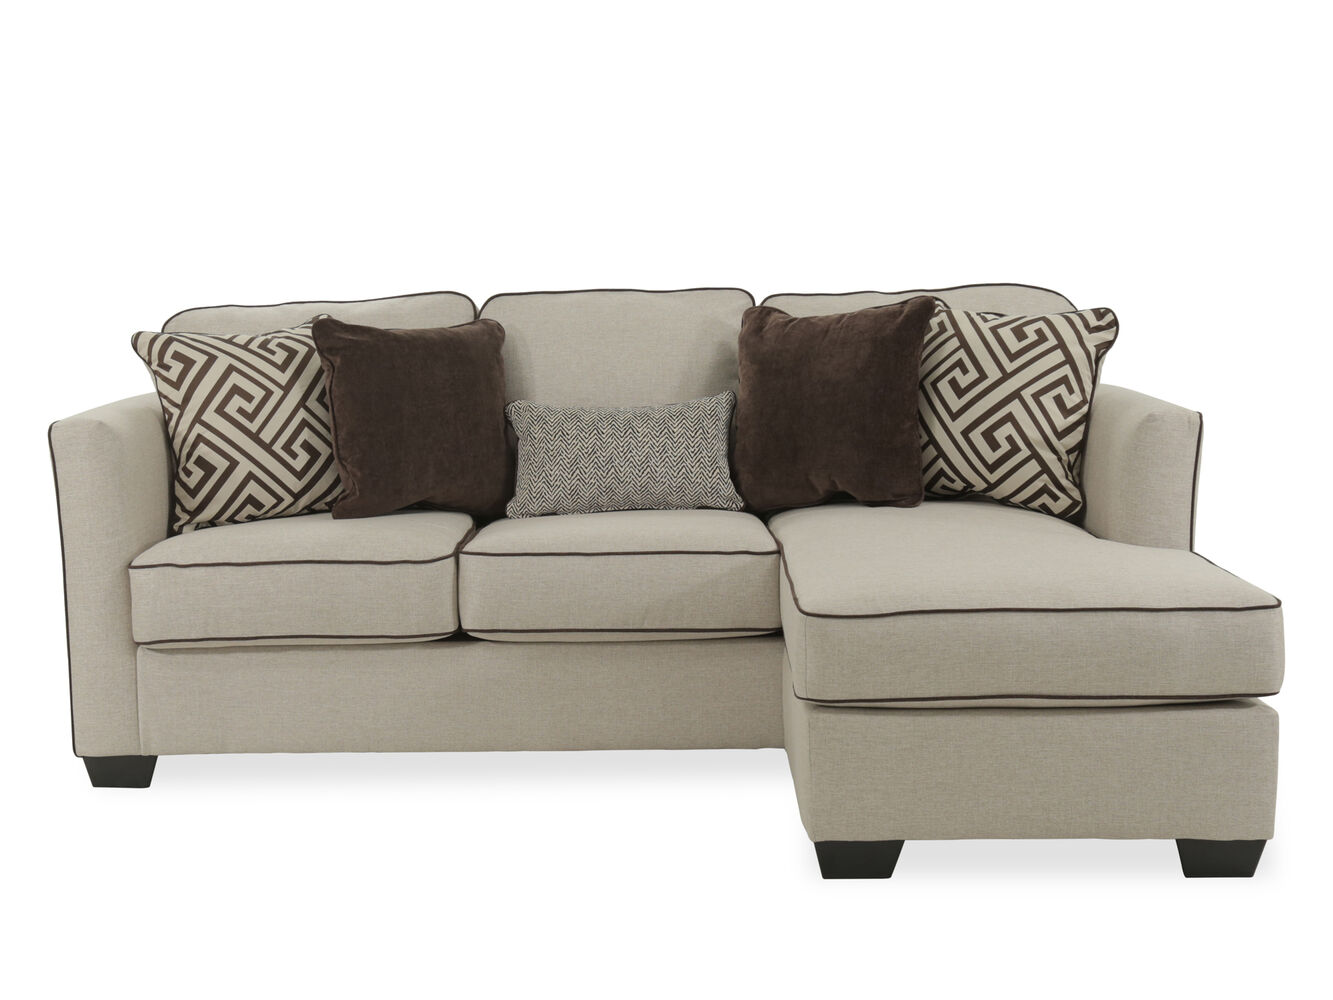 Contemporary 92 Quot Sofa Chaise In Beige Mathis Brothers